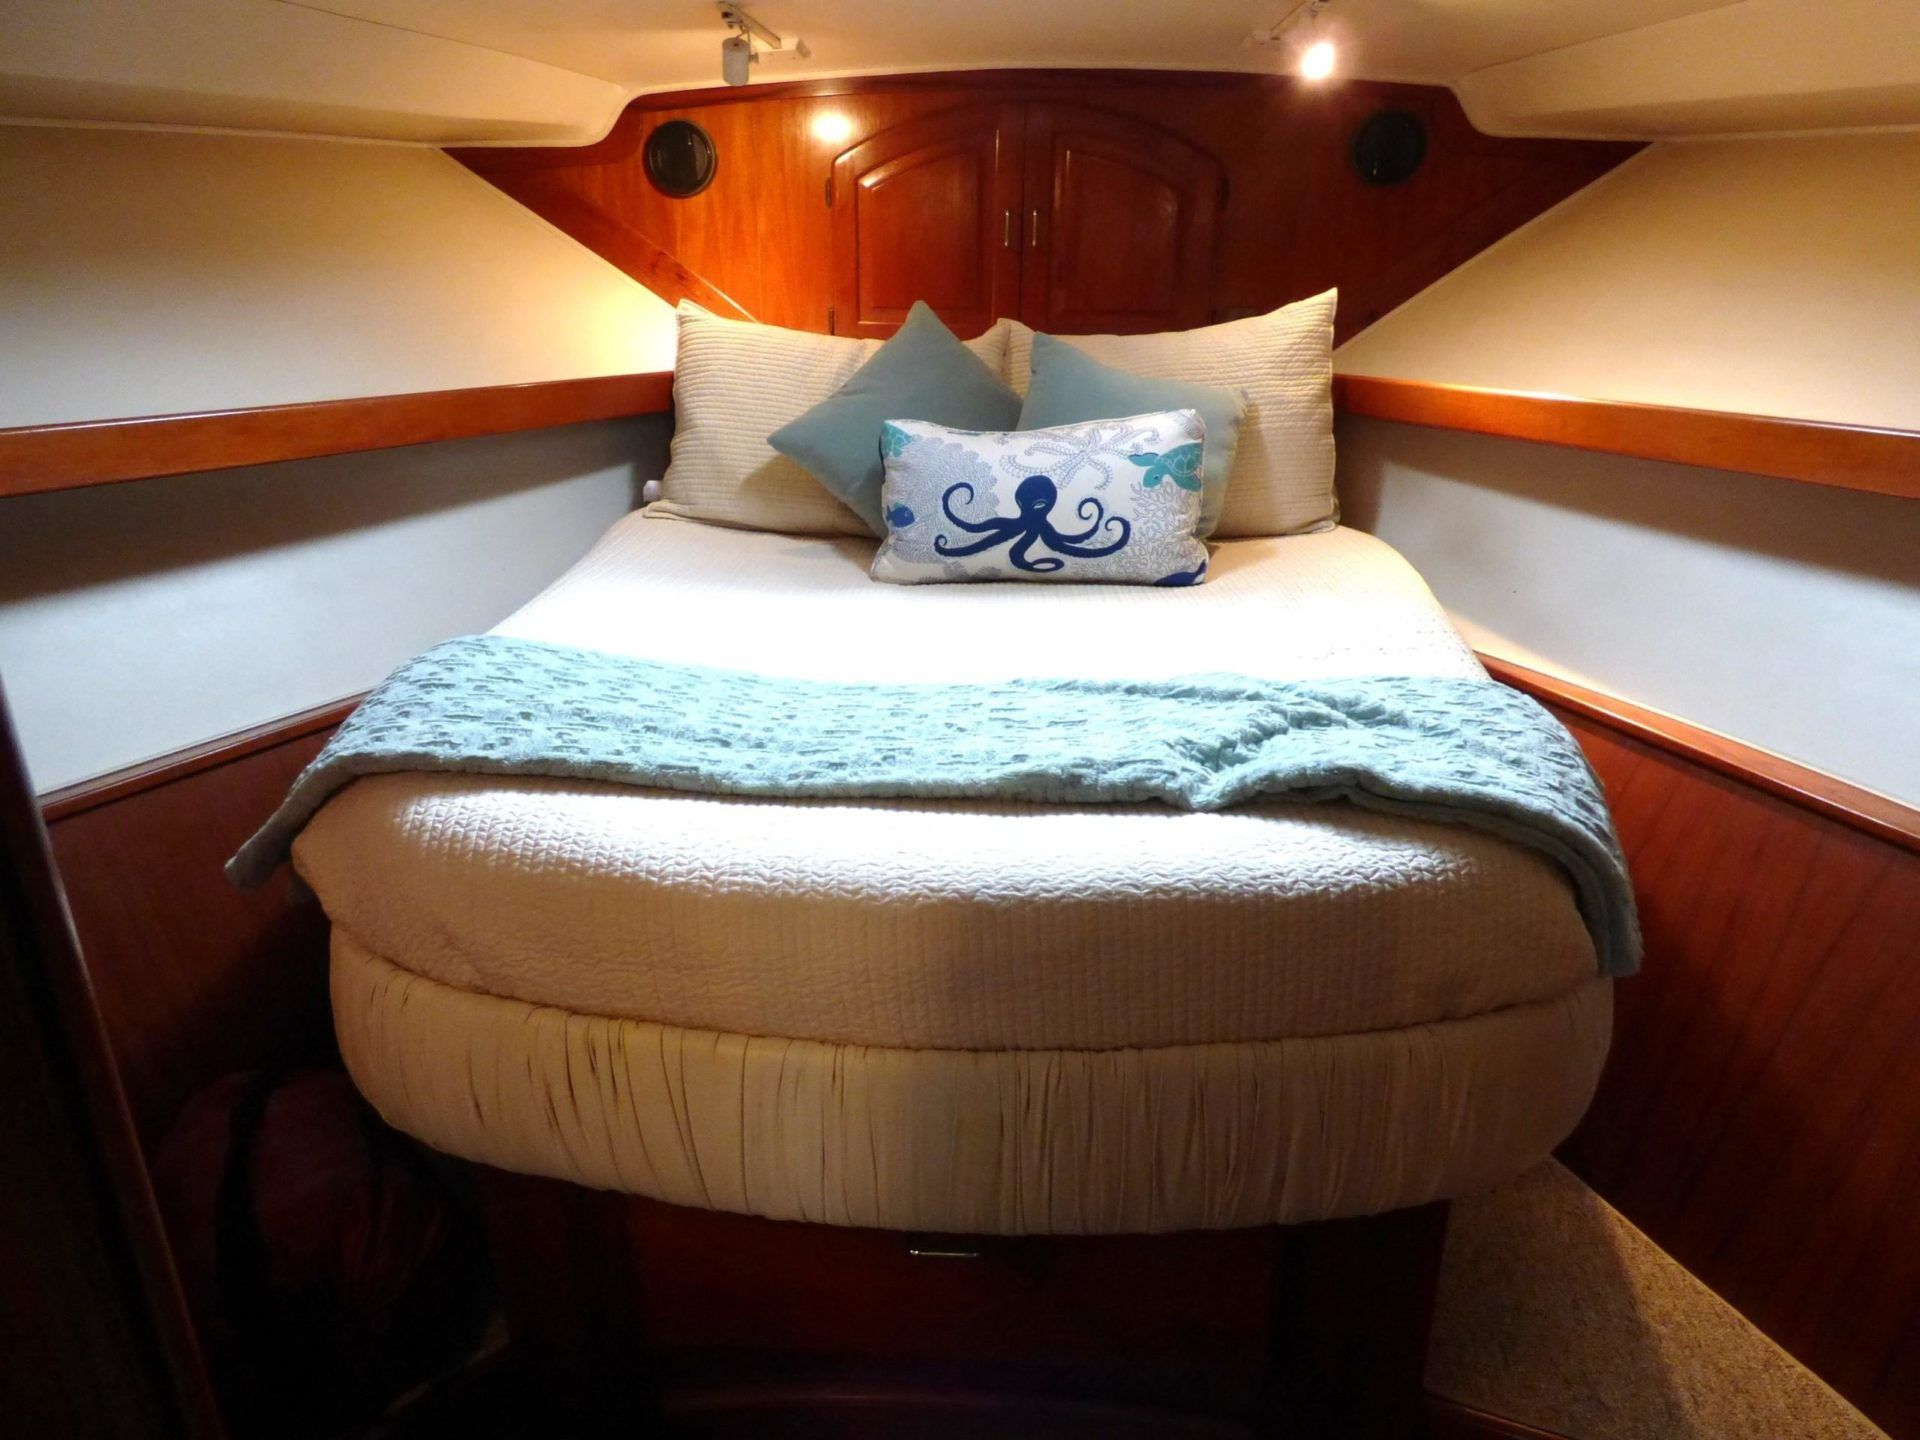 45 californian 45 motor yacht 1989 seacoast yachts teak storage wicker table and chairs teak flooring pinterest